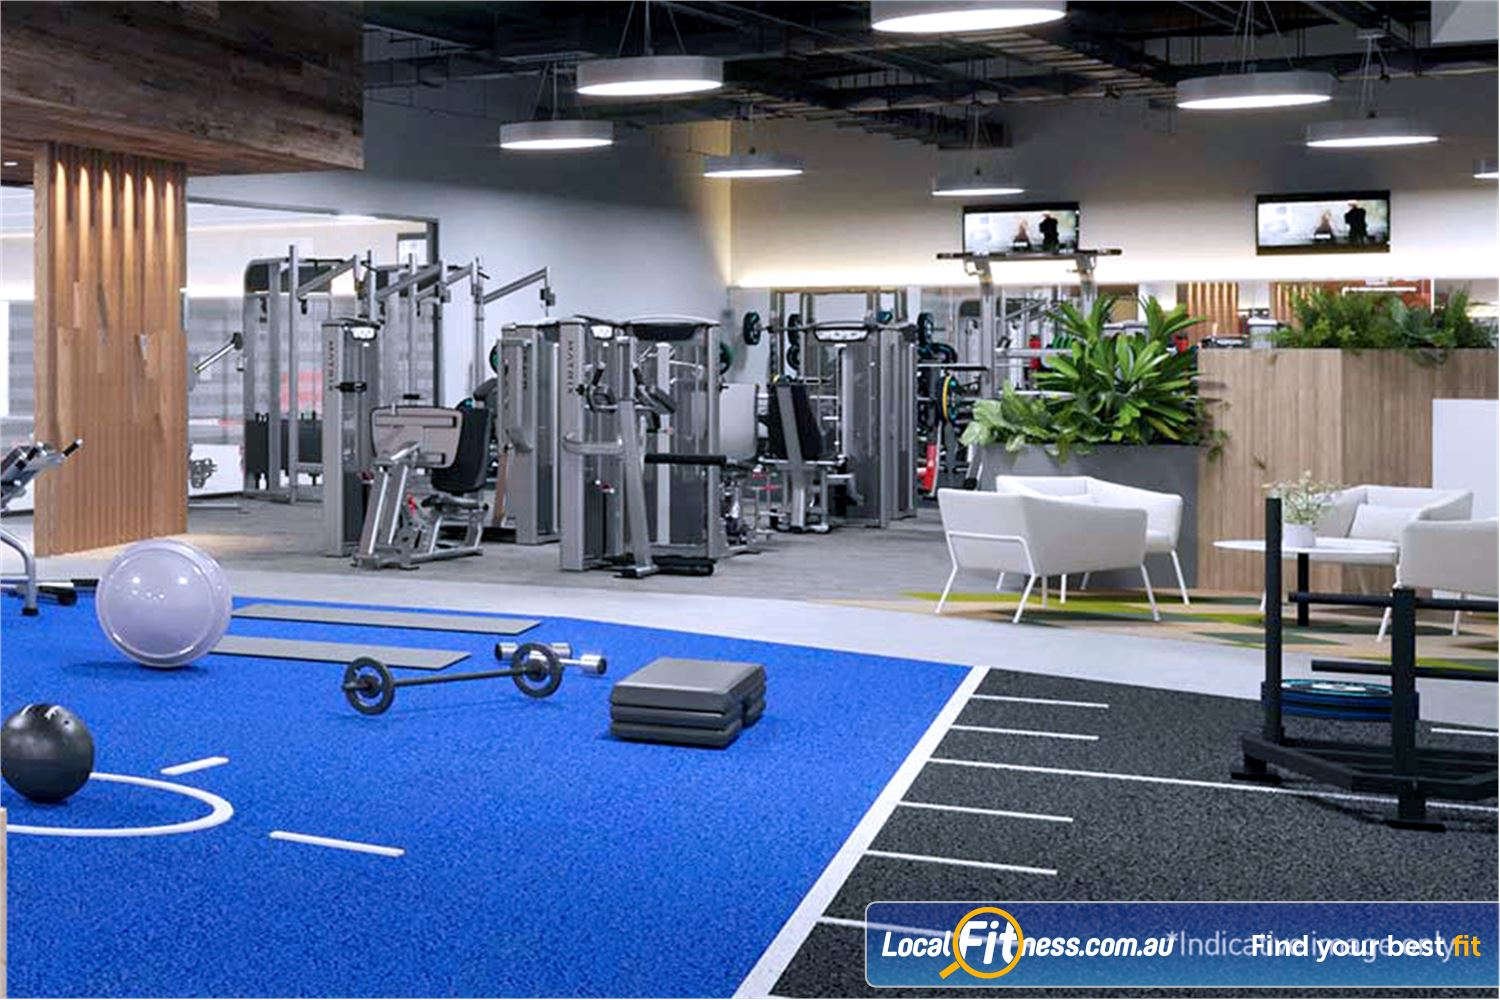 Goodlife Health Clubs Noarlunga Centre Fully equipped functional training zone with Kettlebells, wall balls and more.